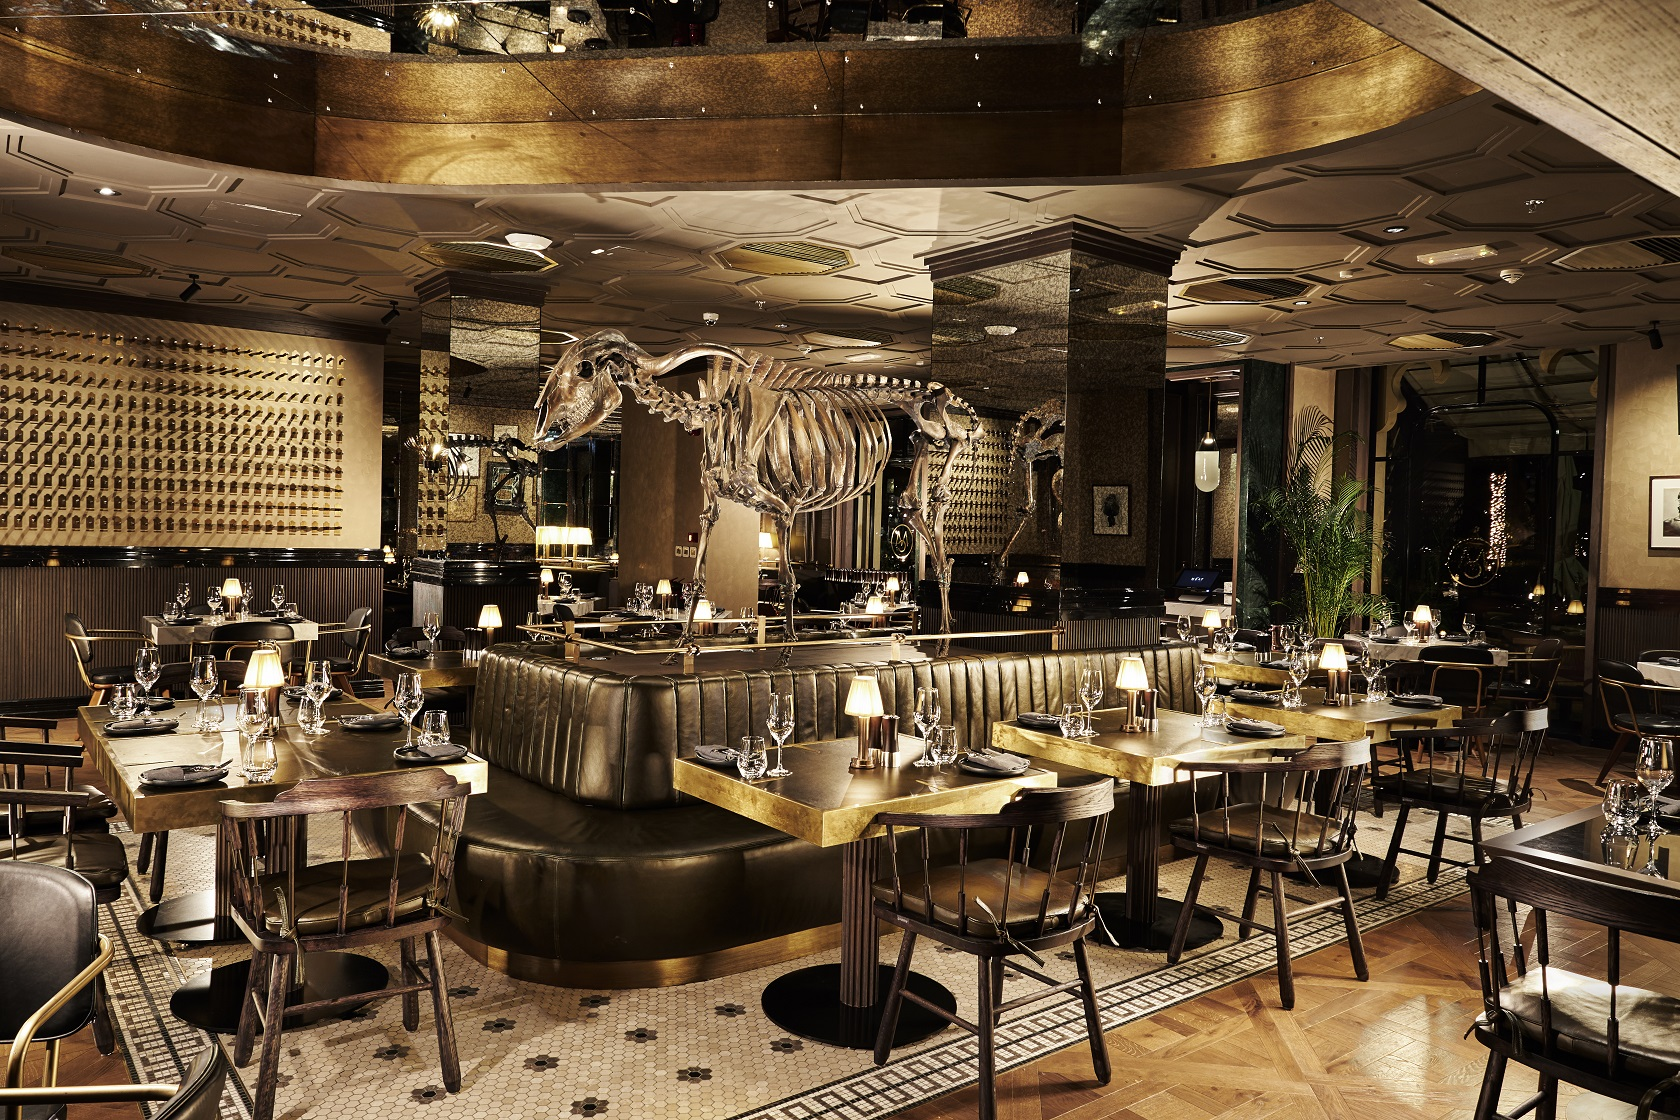 The Meat Co. Souk Madinat Jumeirah re-opens following refurbishment -  Restaurants, The Meat Co, Souk Madinat Jumeirah - Caterer Middle East